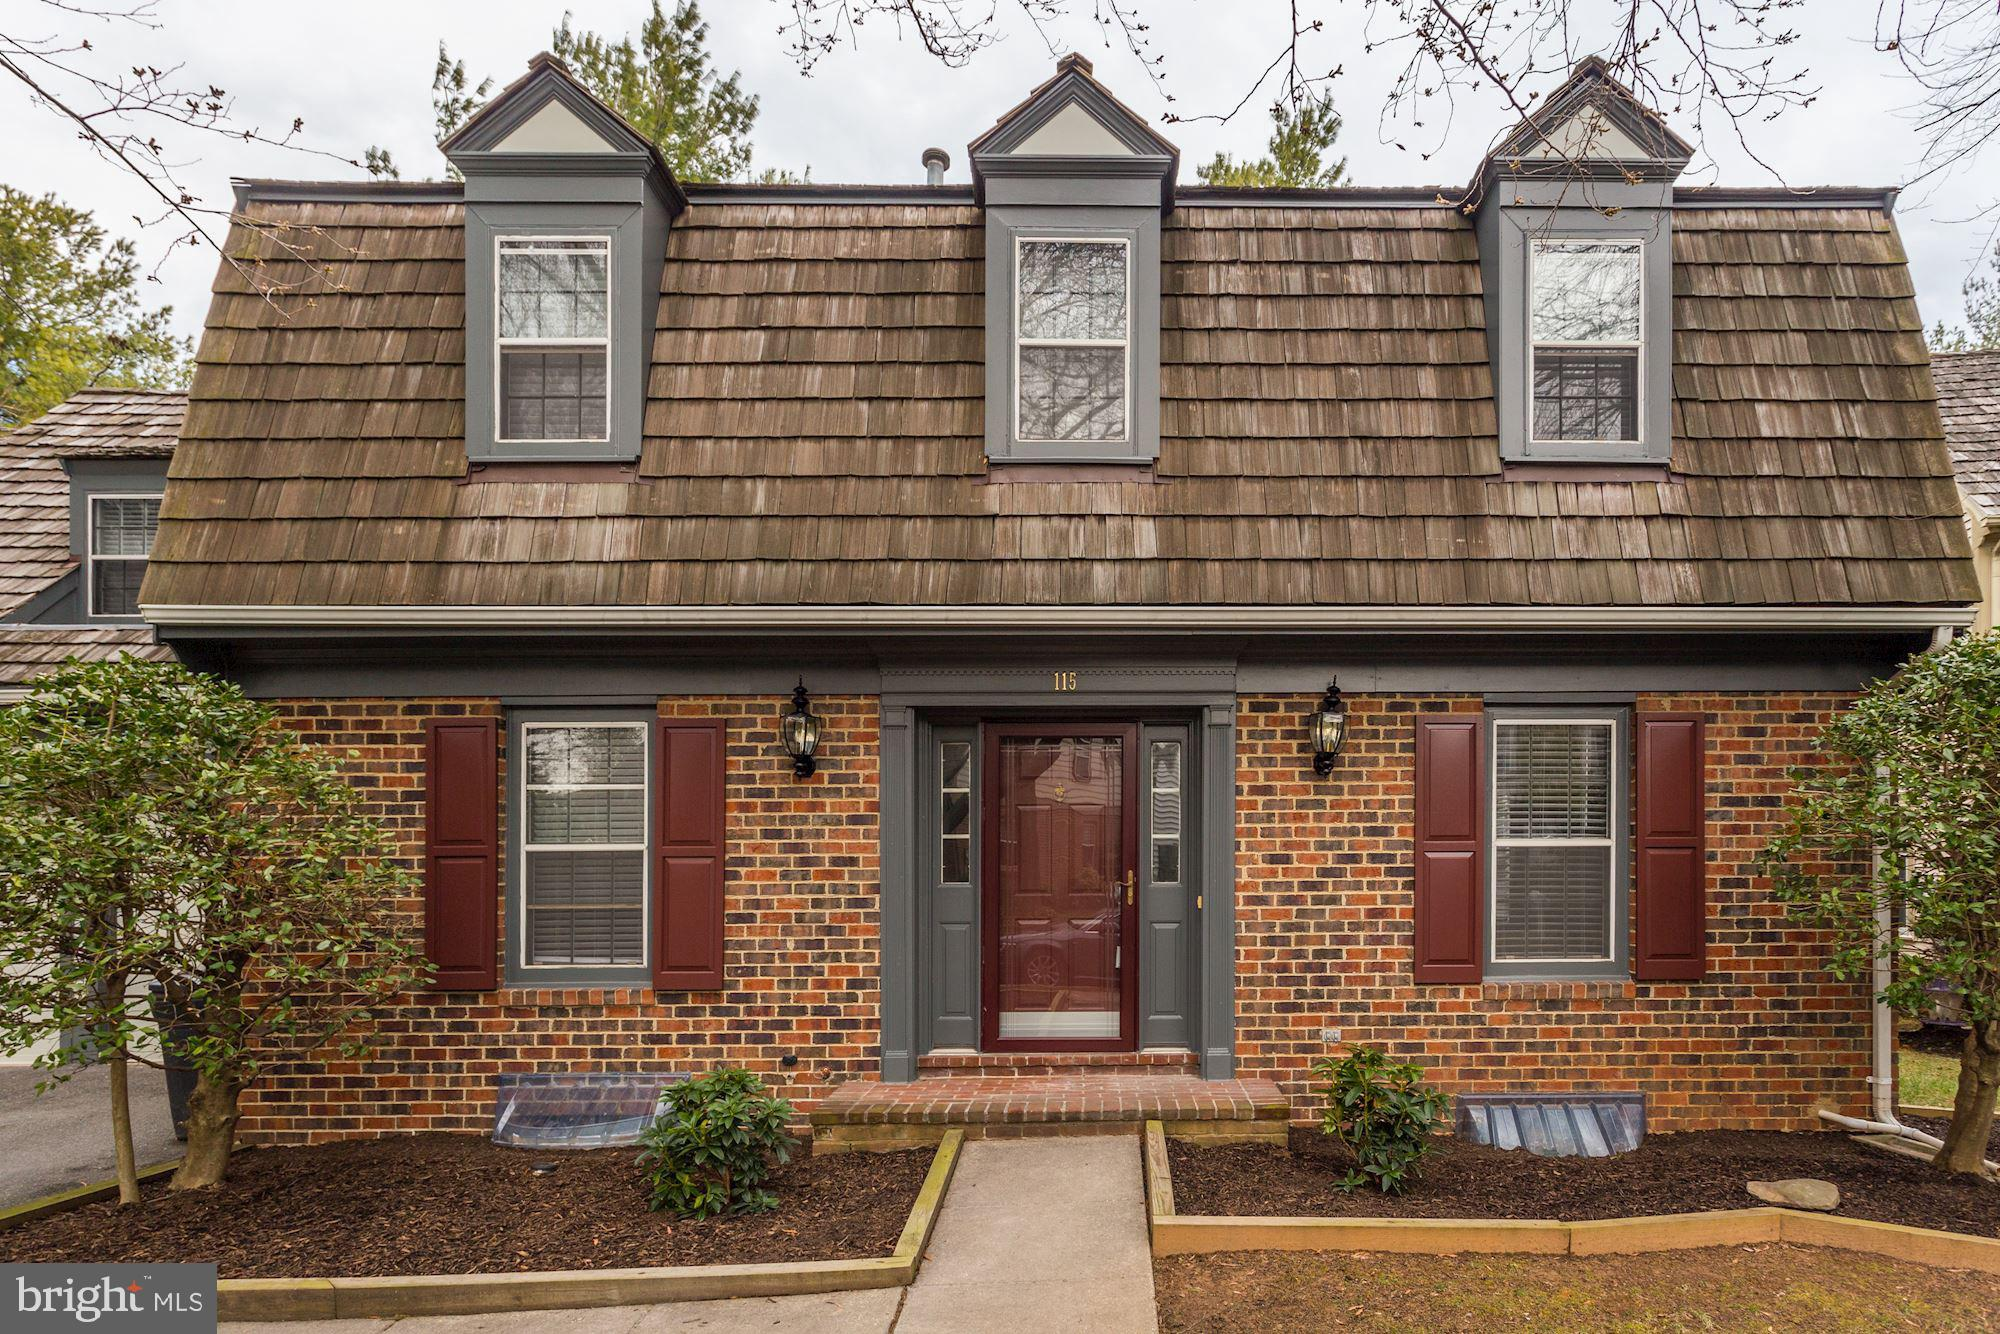 115 BILLINGSGATE LANE, GAITHERSBURG, MD 20877